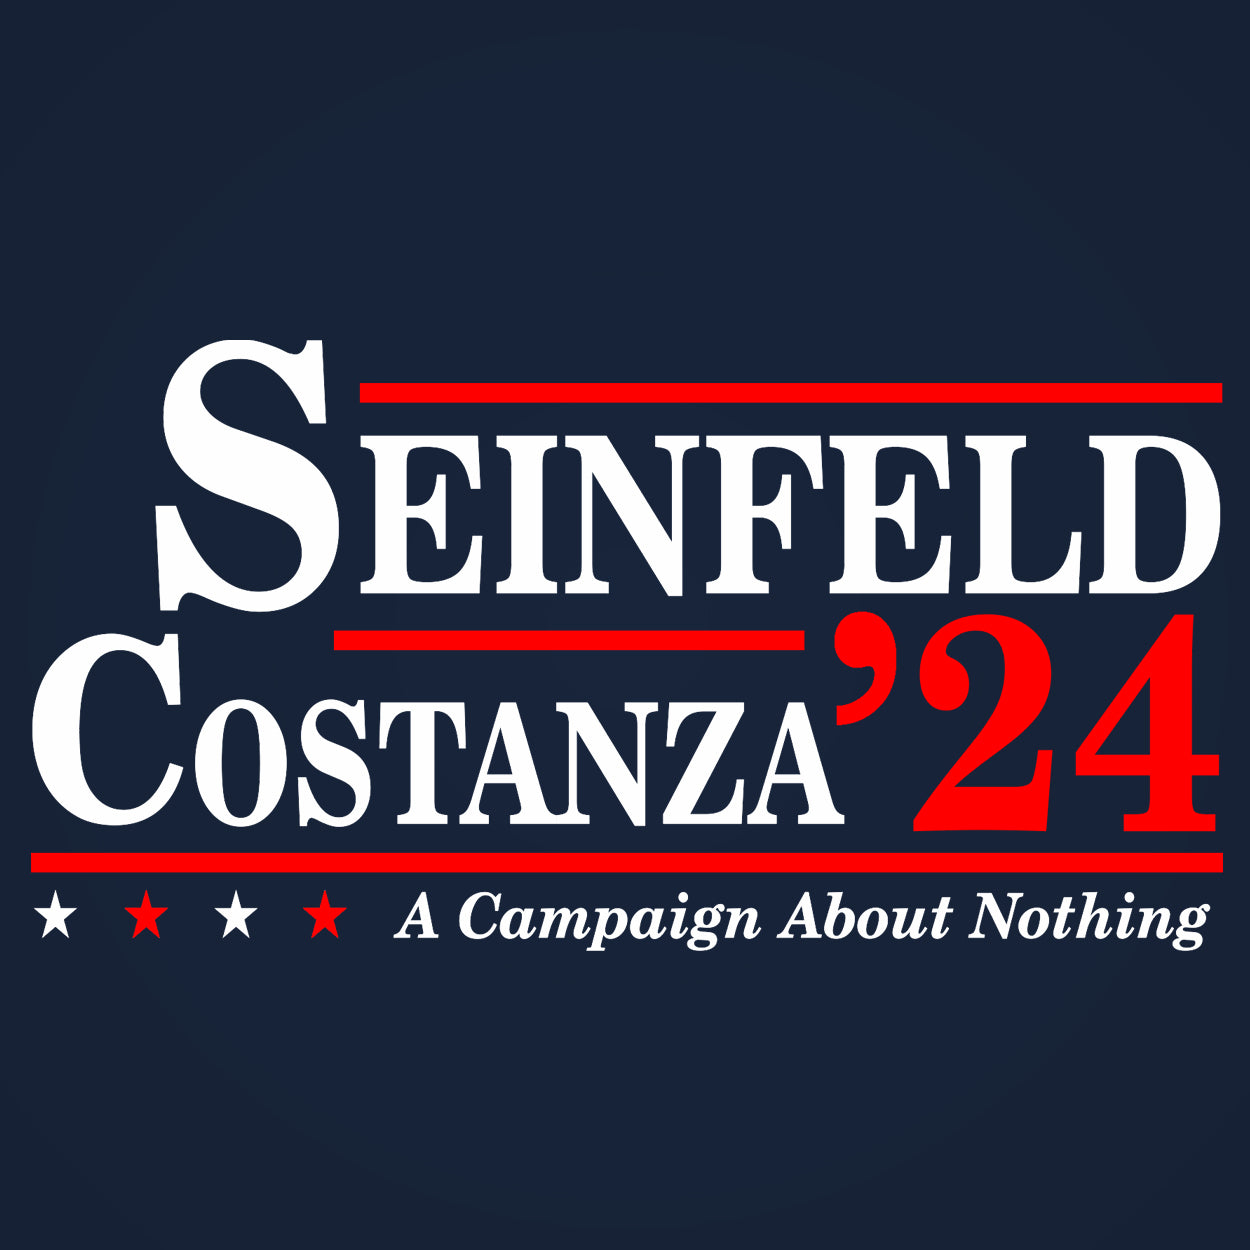 Seinfeld Costanza 2020 Election - DonkeyTees